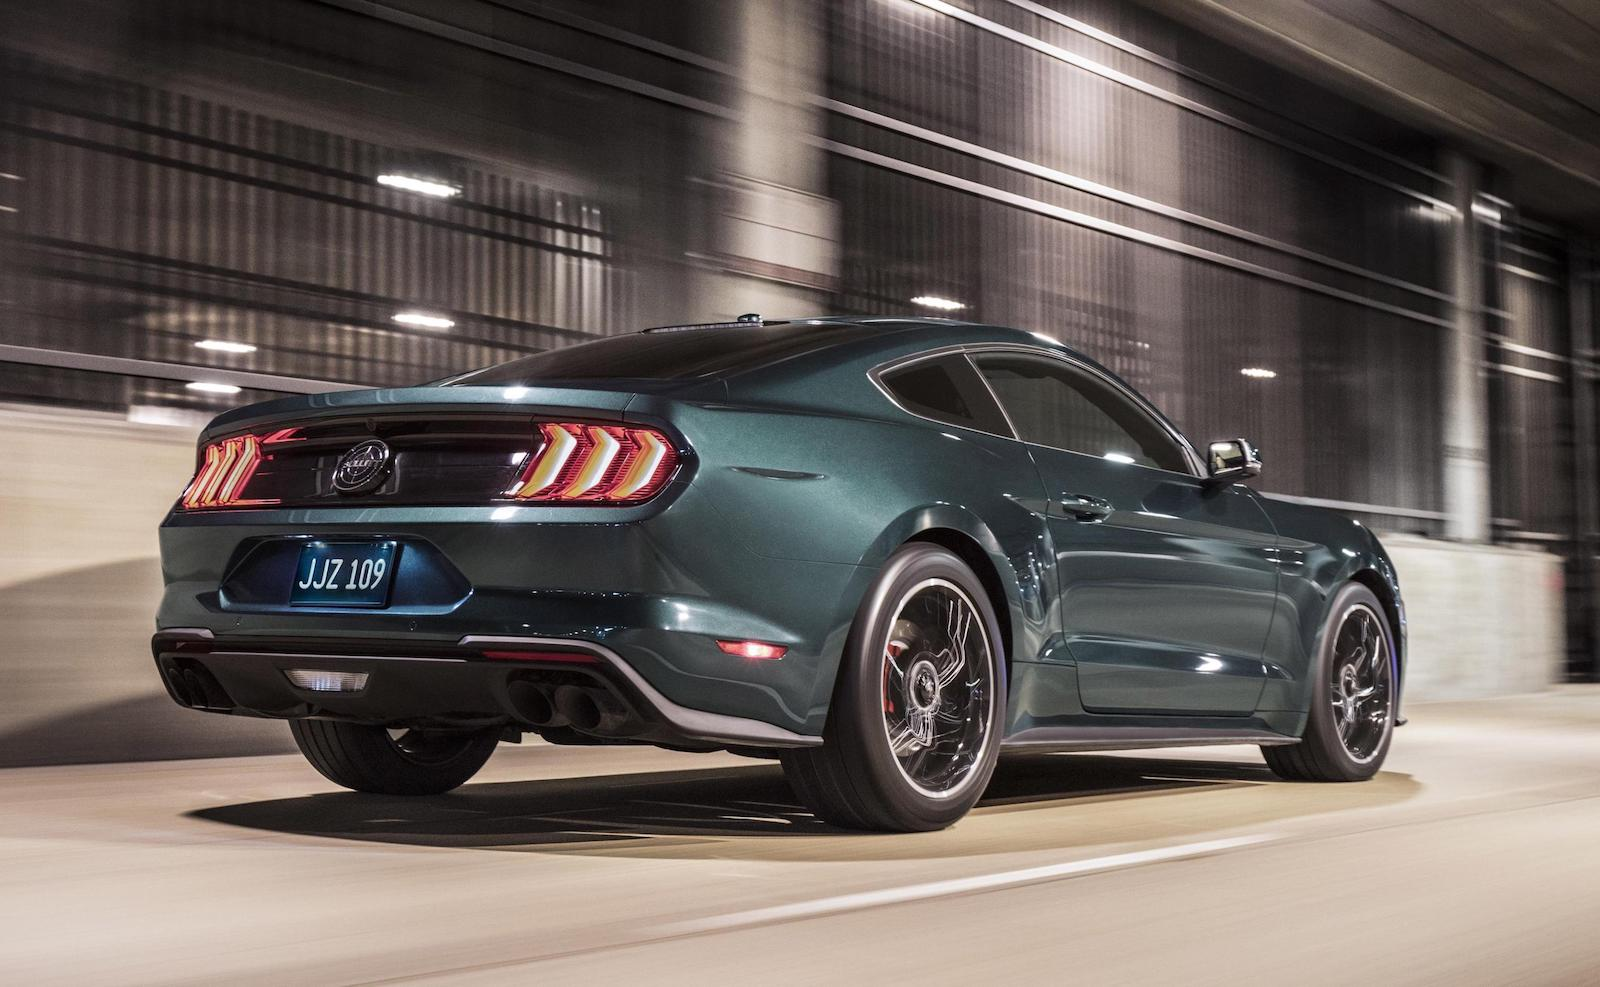 2017 Ford Mustang For Sale >> 2018 Ford Mustang Bullitt debuts at Detroit show